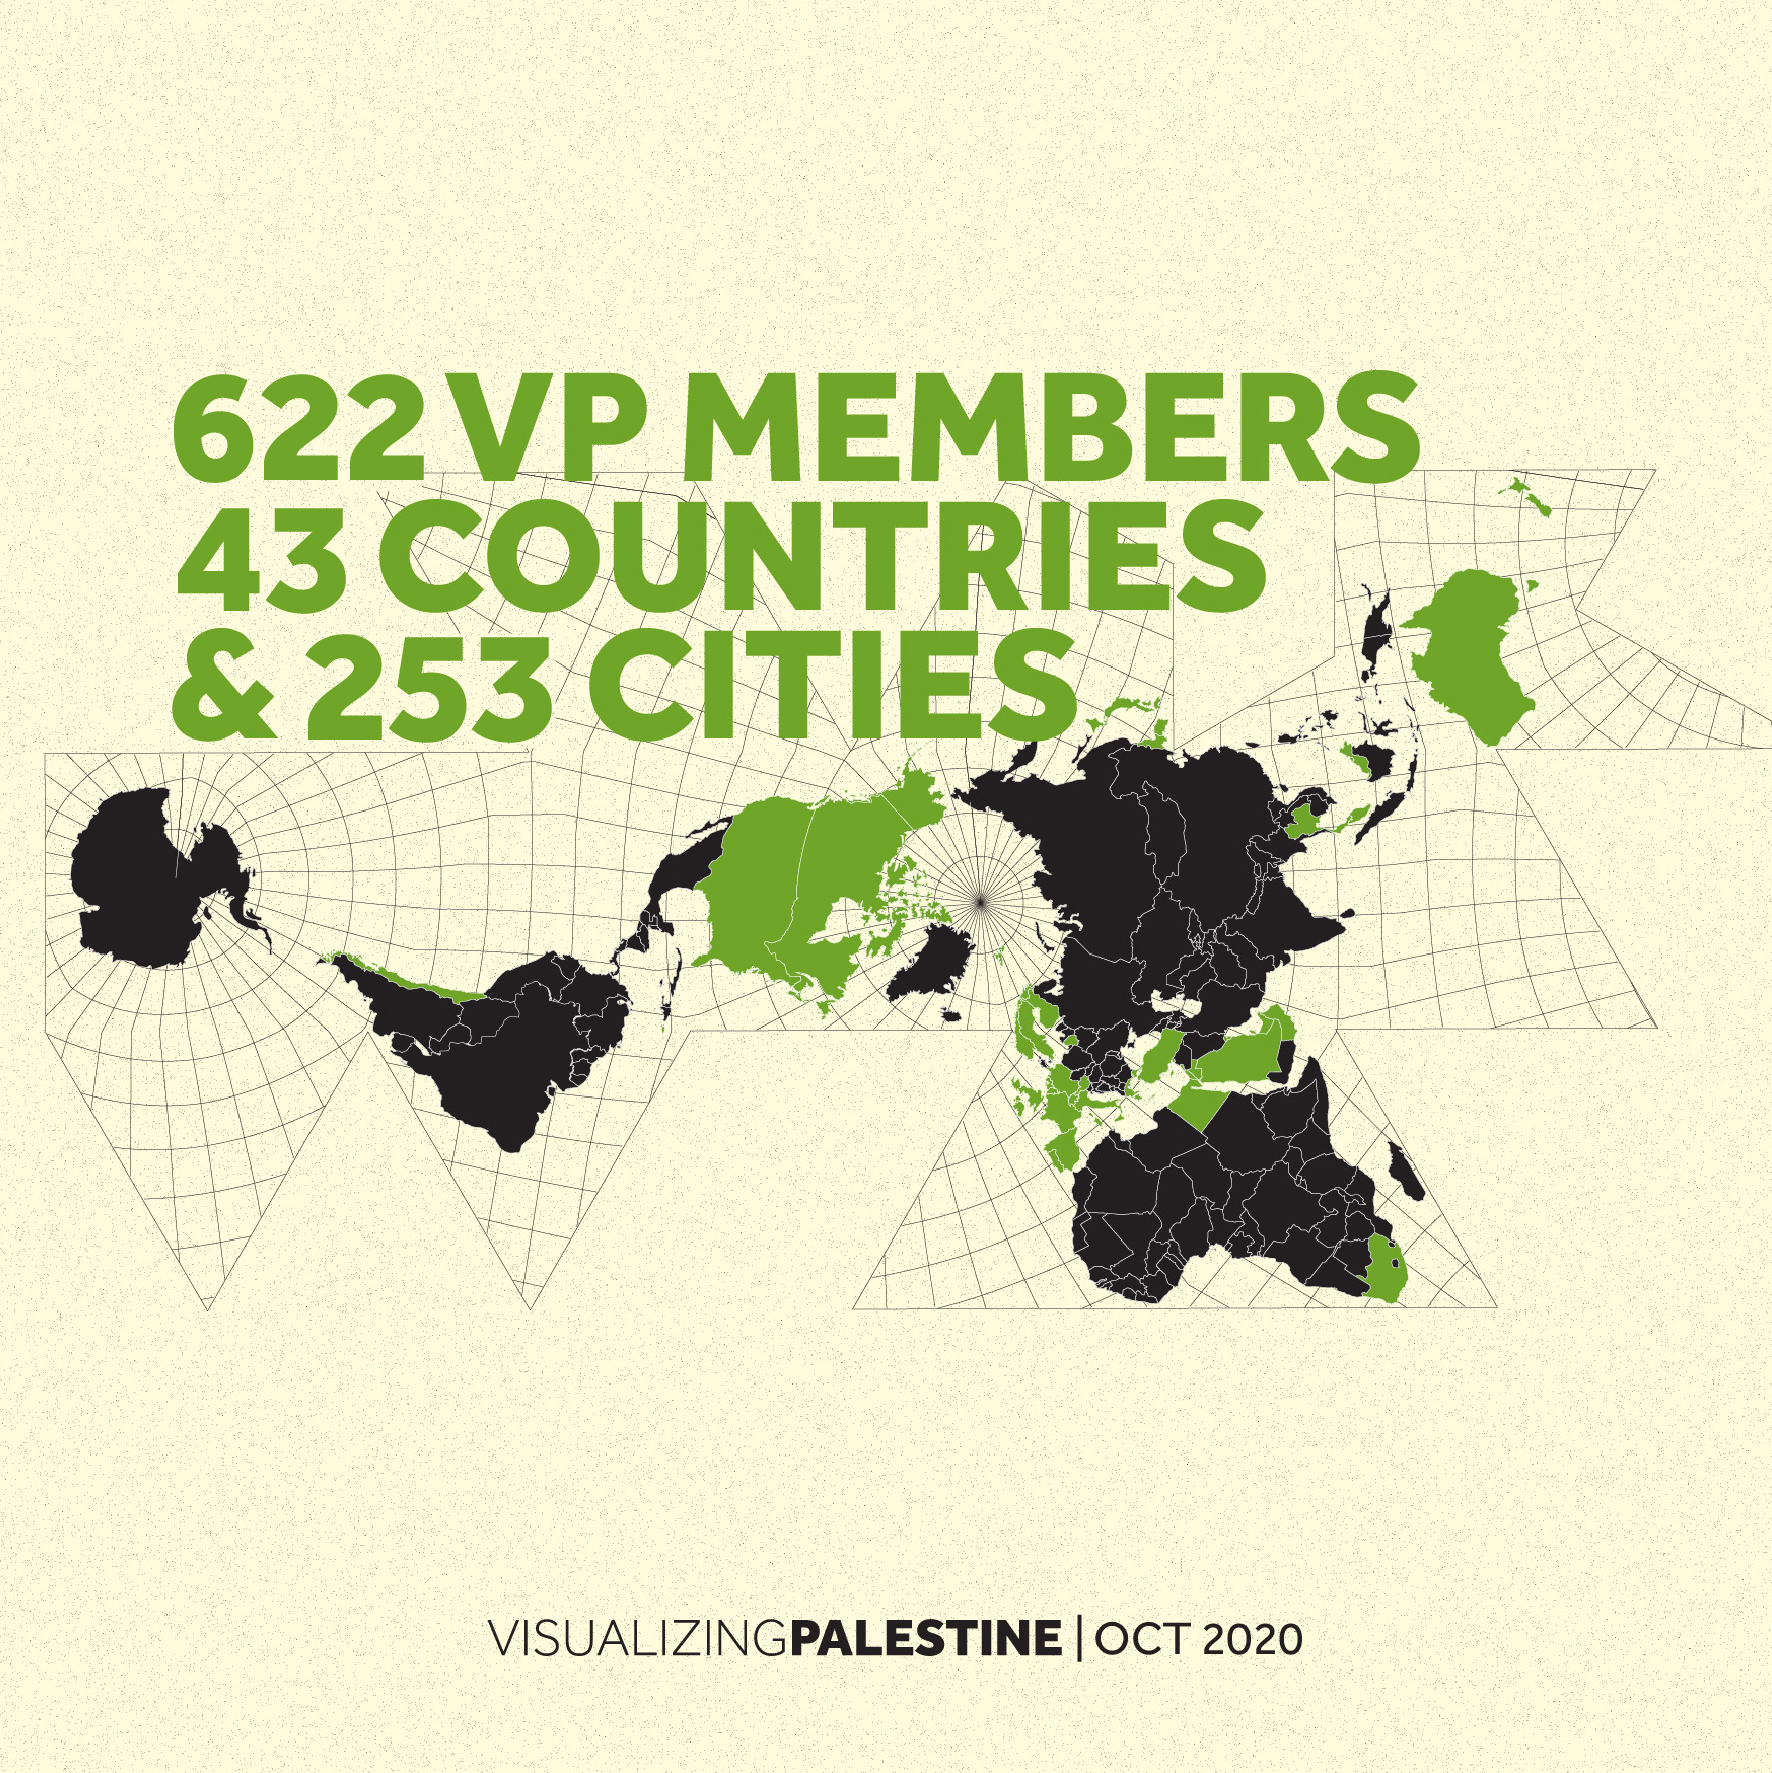 Visualizing Palestine Members 2020